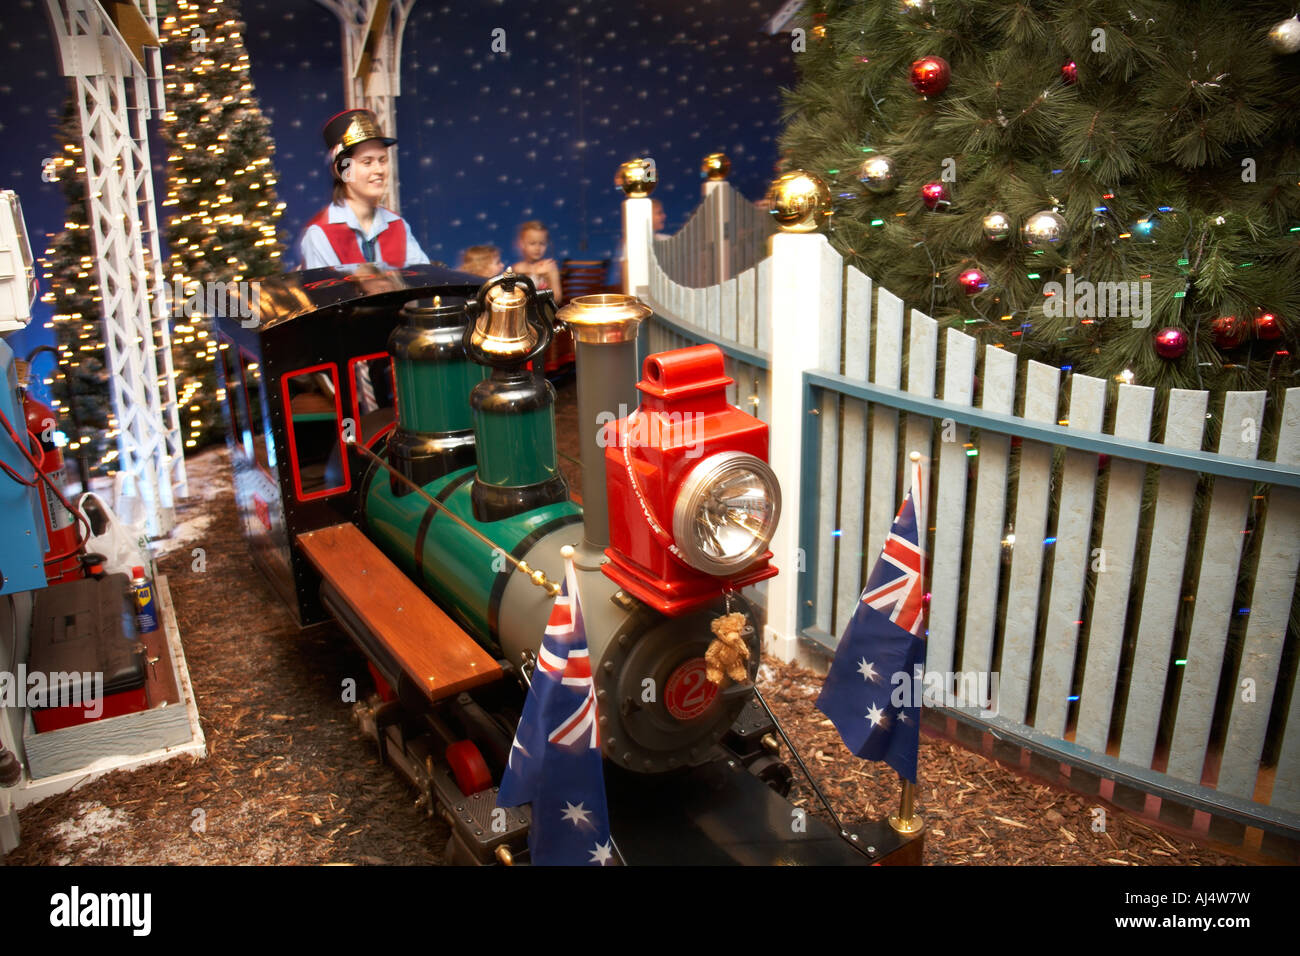 Christmas Train Ride.Children On Department Store Magical Christmas Train Ride In